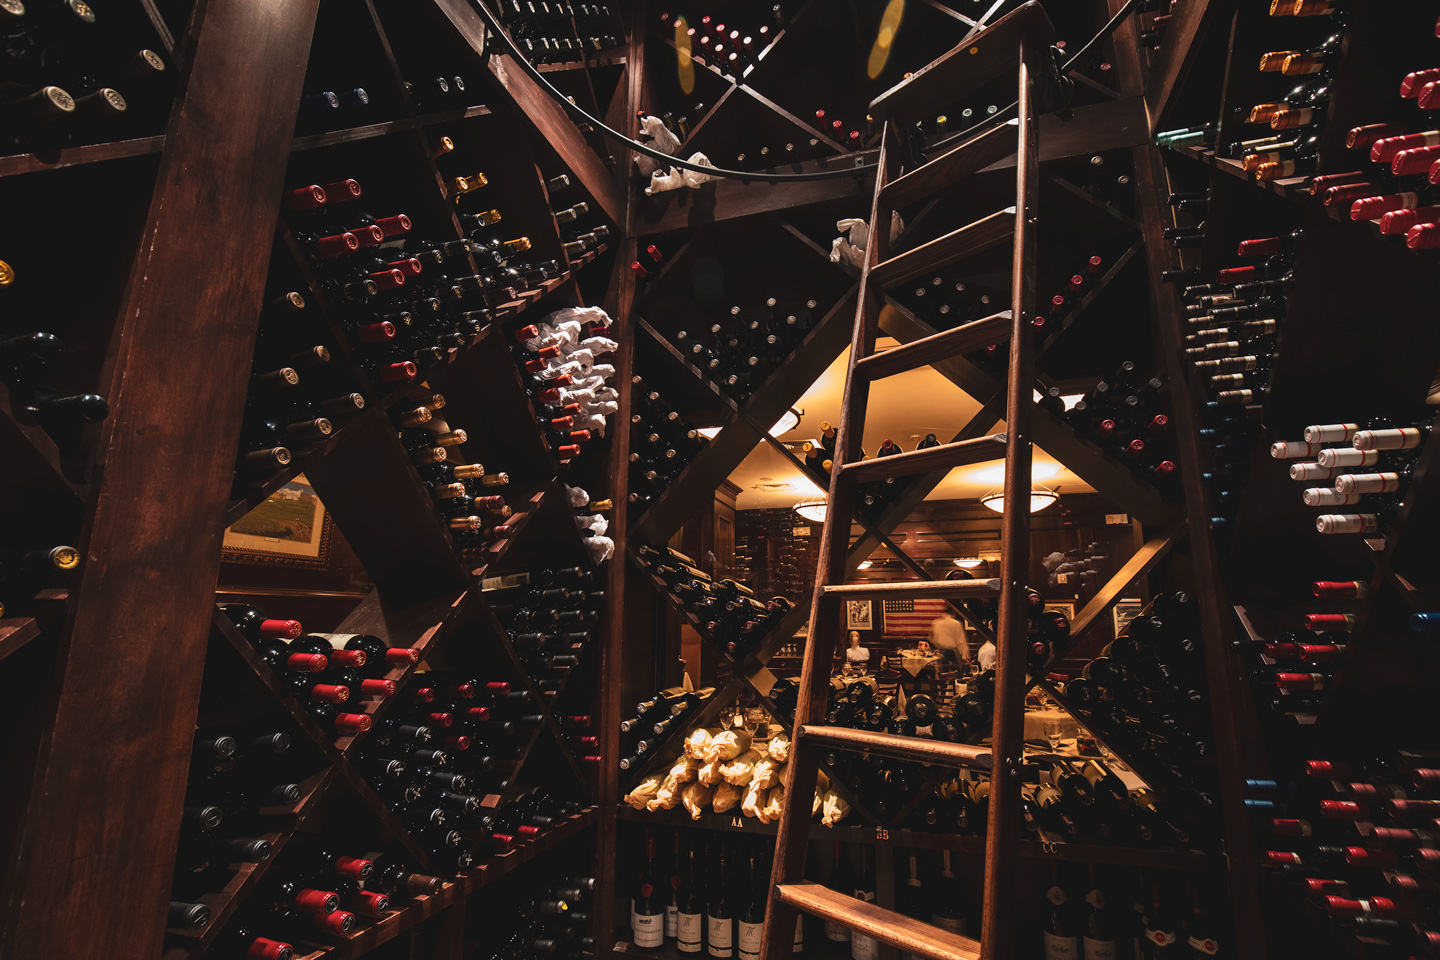 Bob's Steak & Chop House - Grapevine, TX (Wine Cellar)